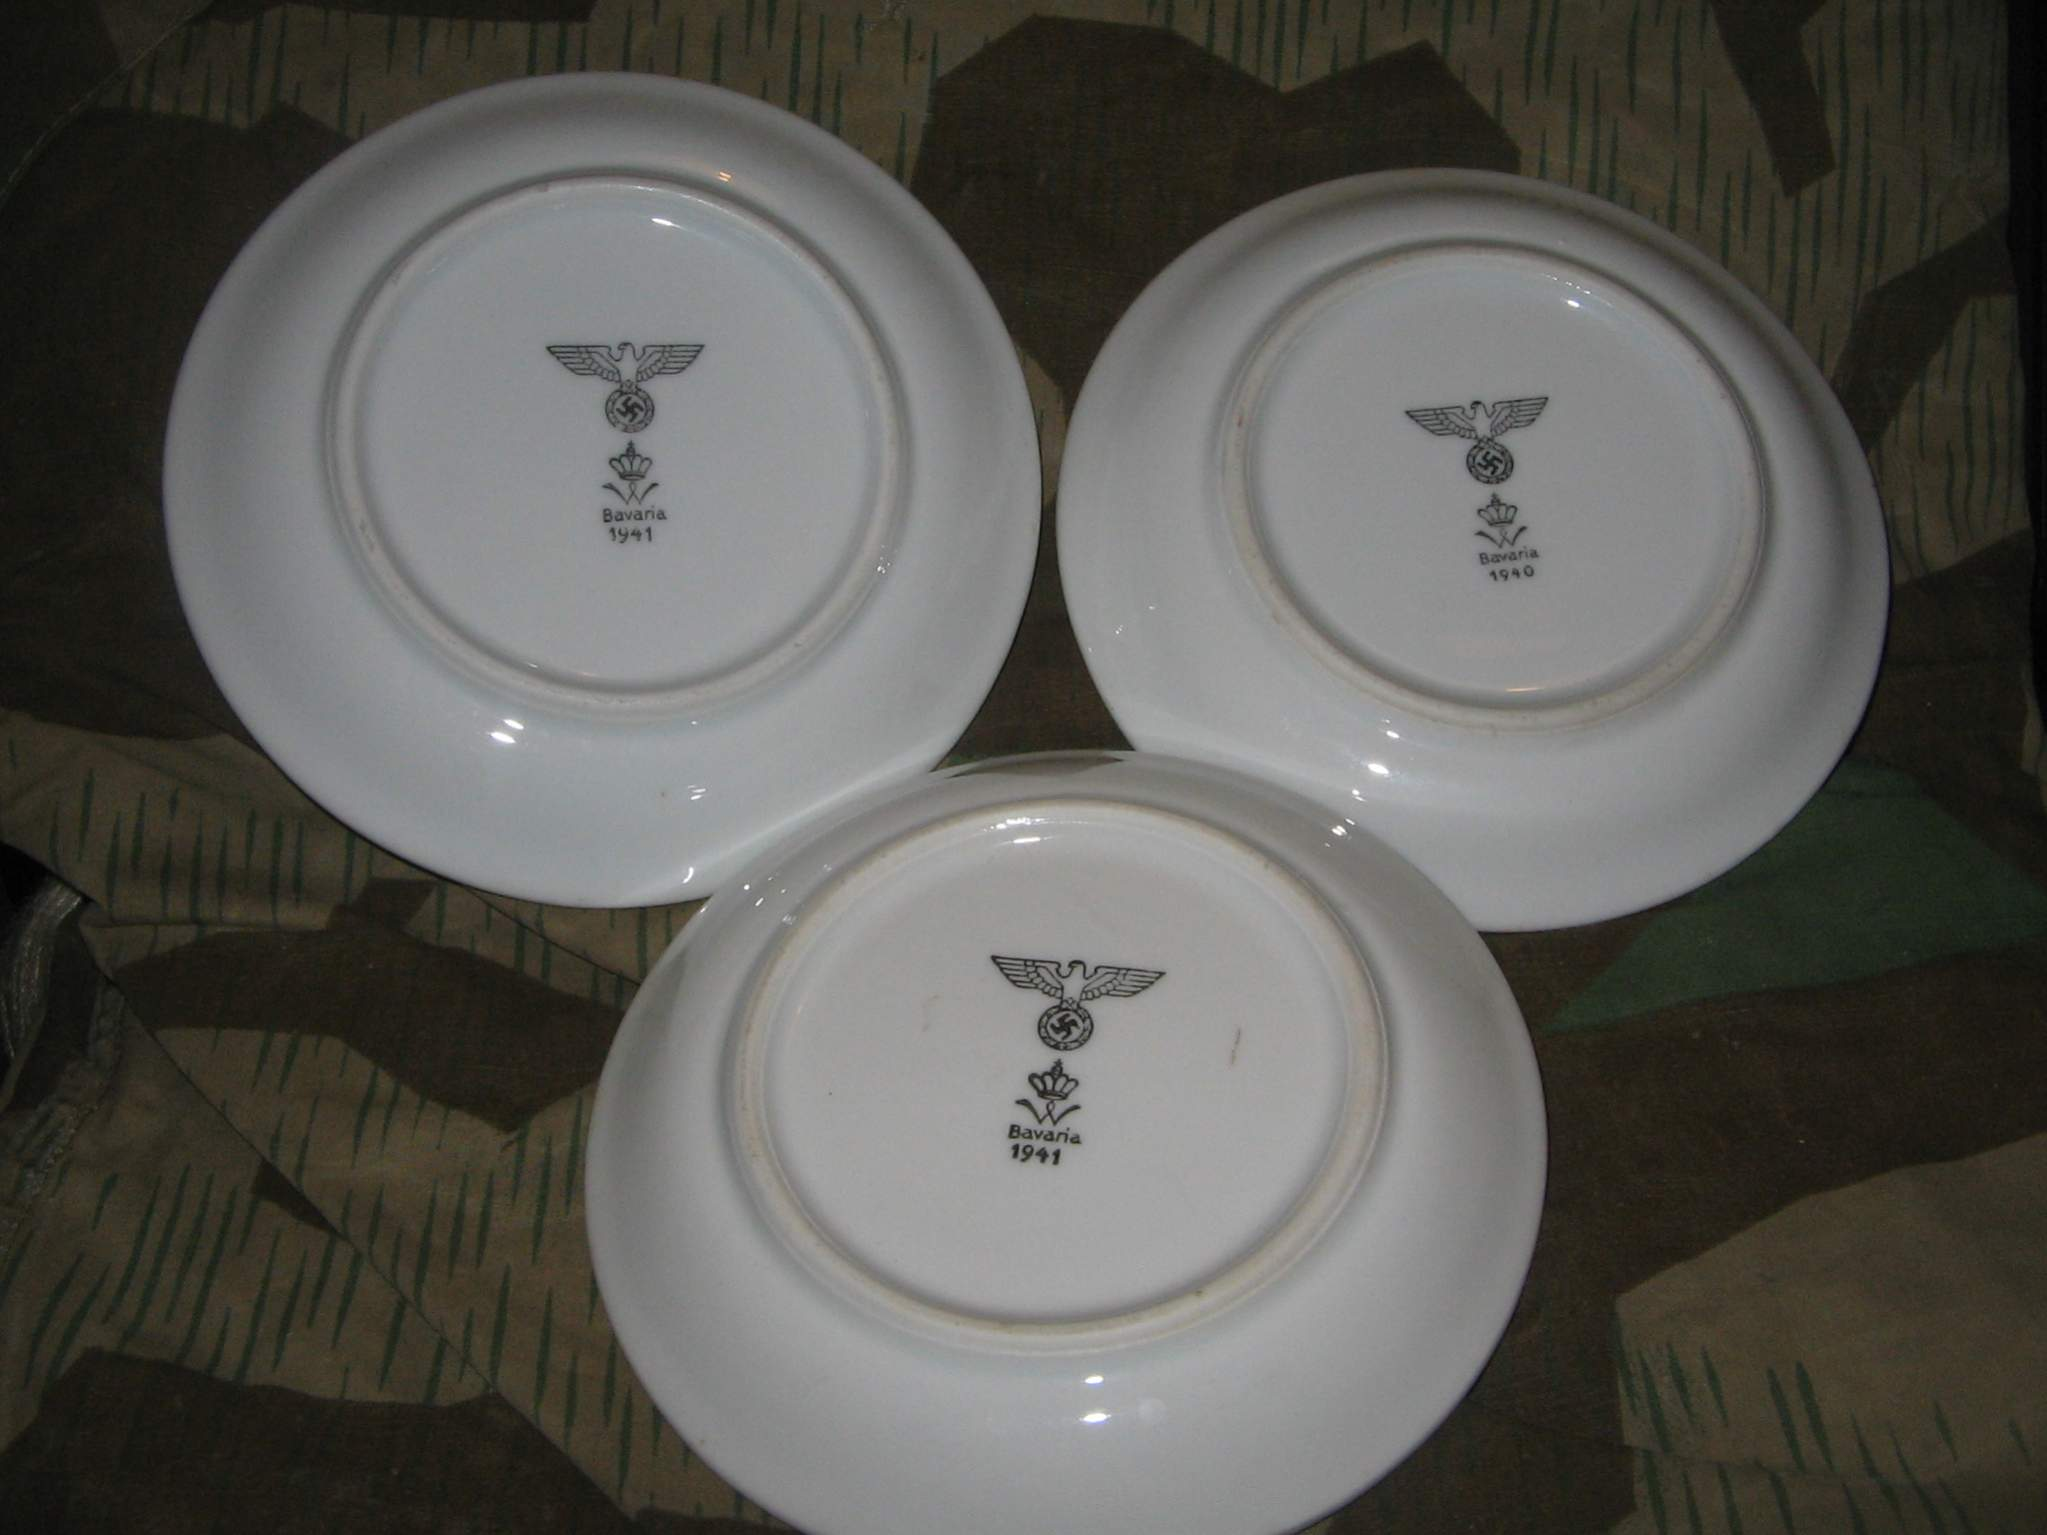 Some more German WWII plates